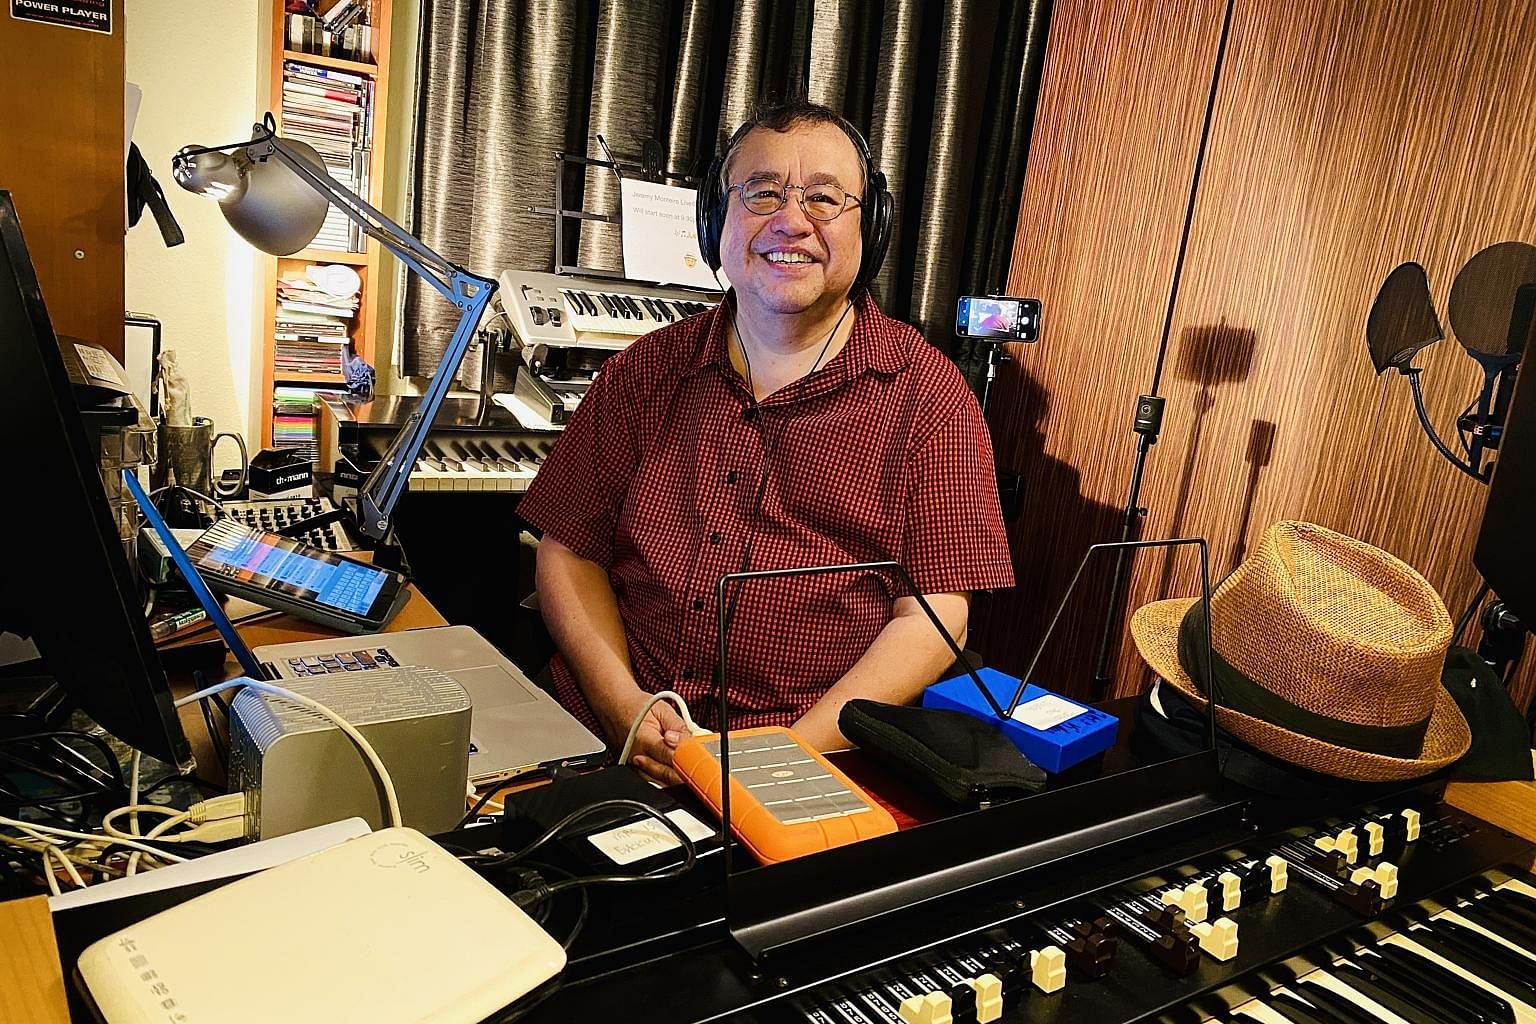 Jazz maestro Jeremy Monteiro is duly occupied with entertaining fans via livestreams, recording vocals at his home studio, working on finishing his second book and practising music three times more than he normally does.